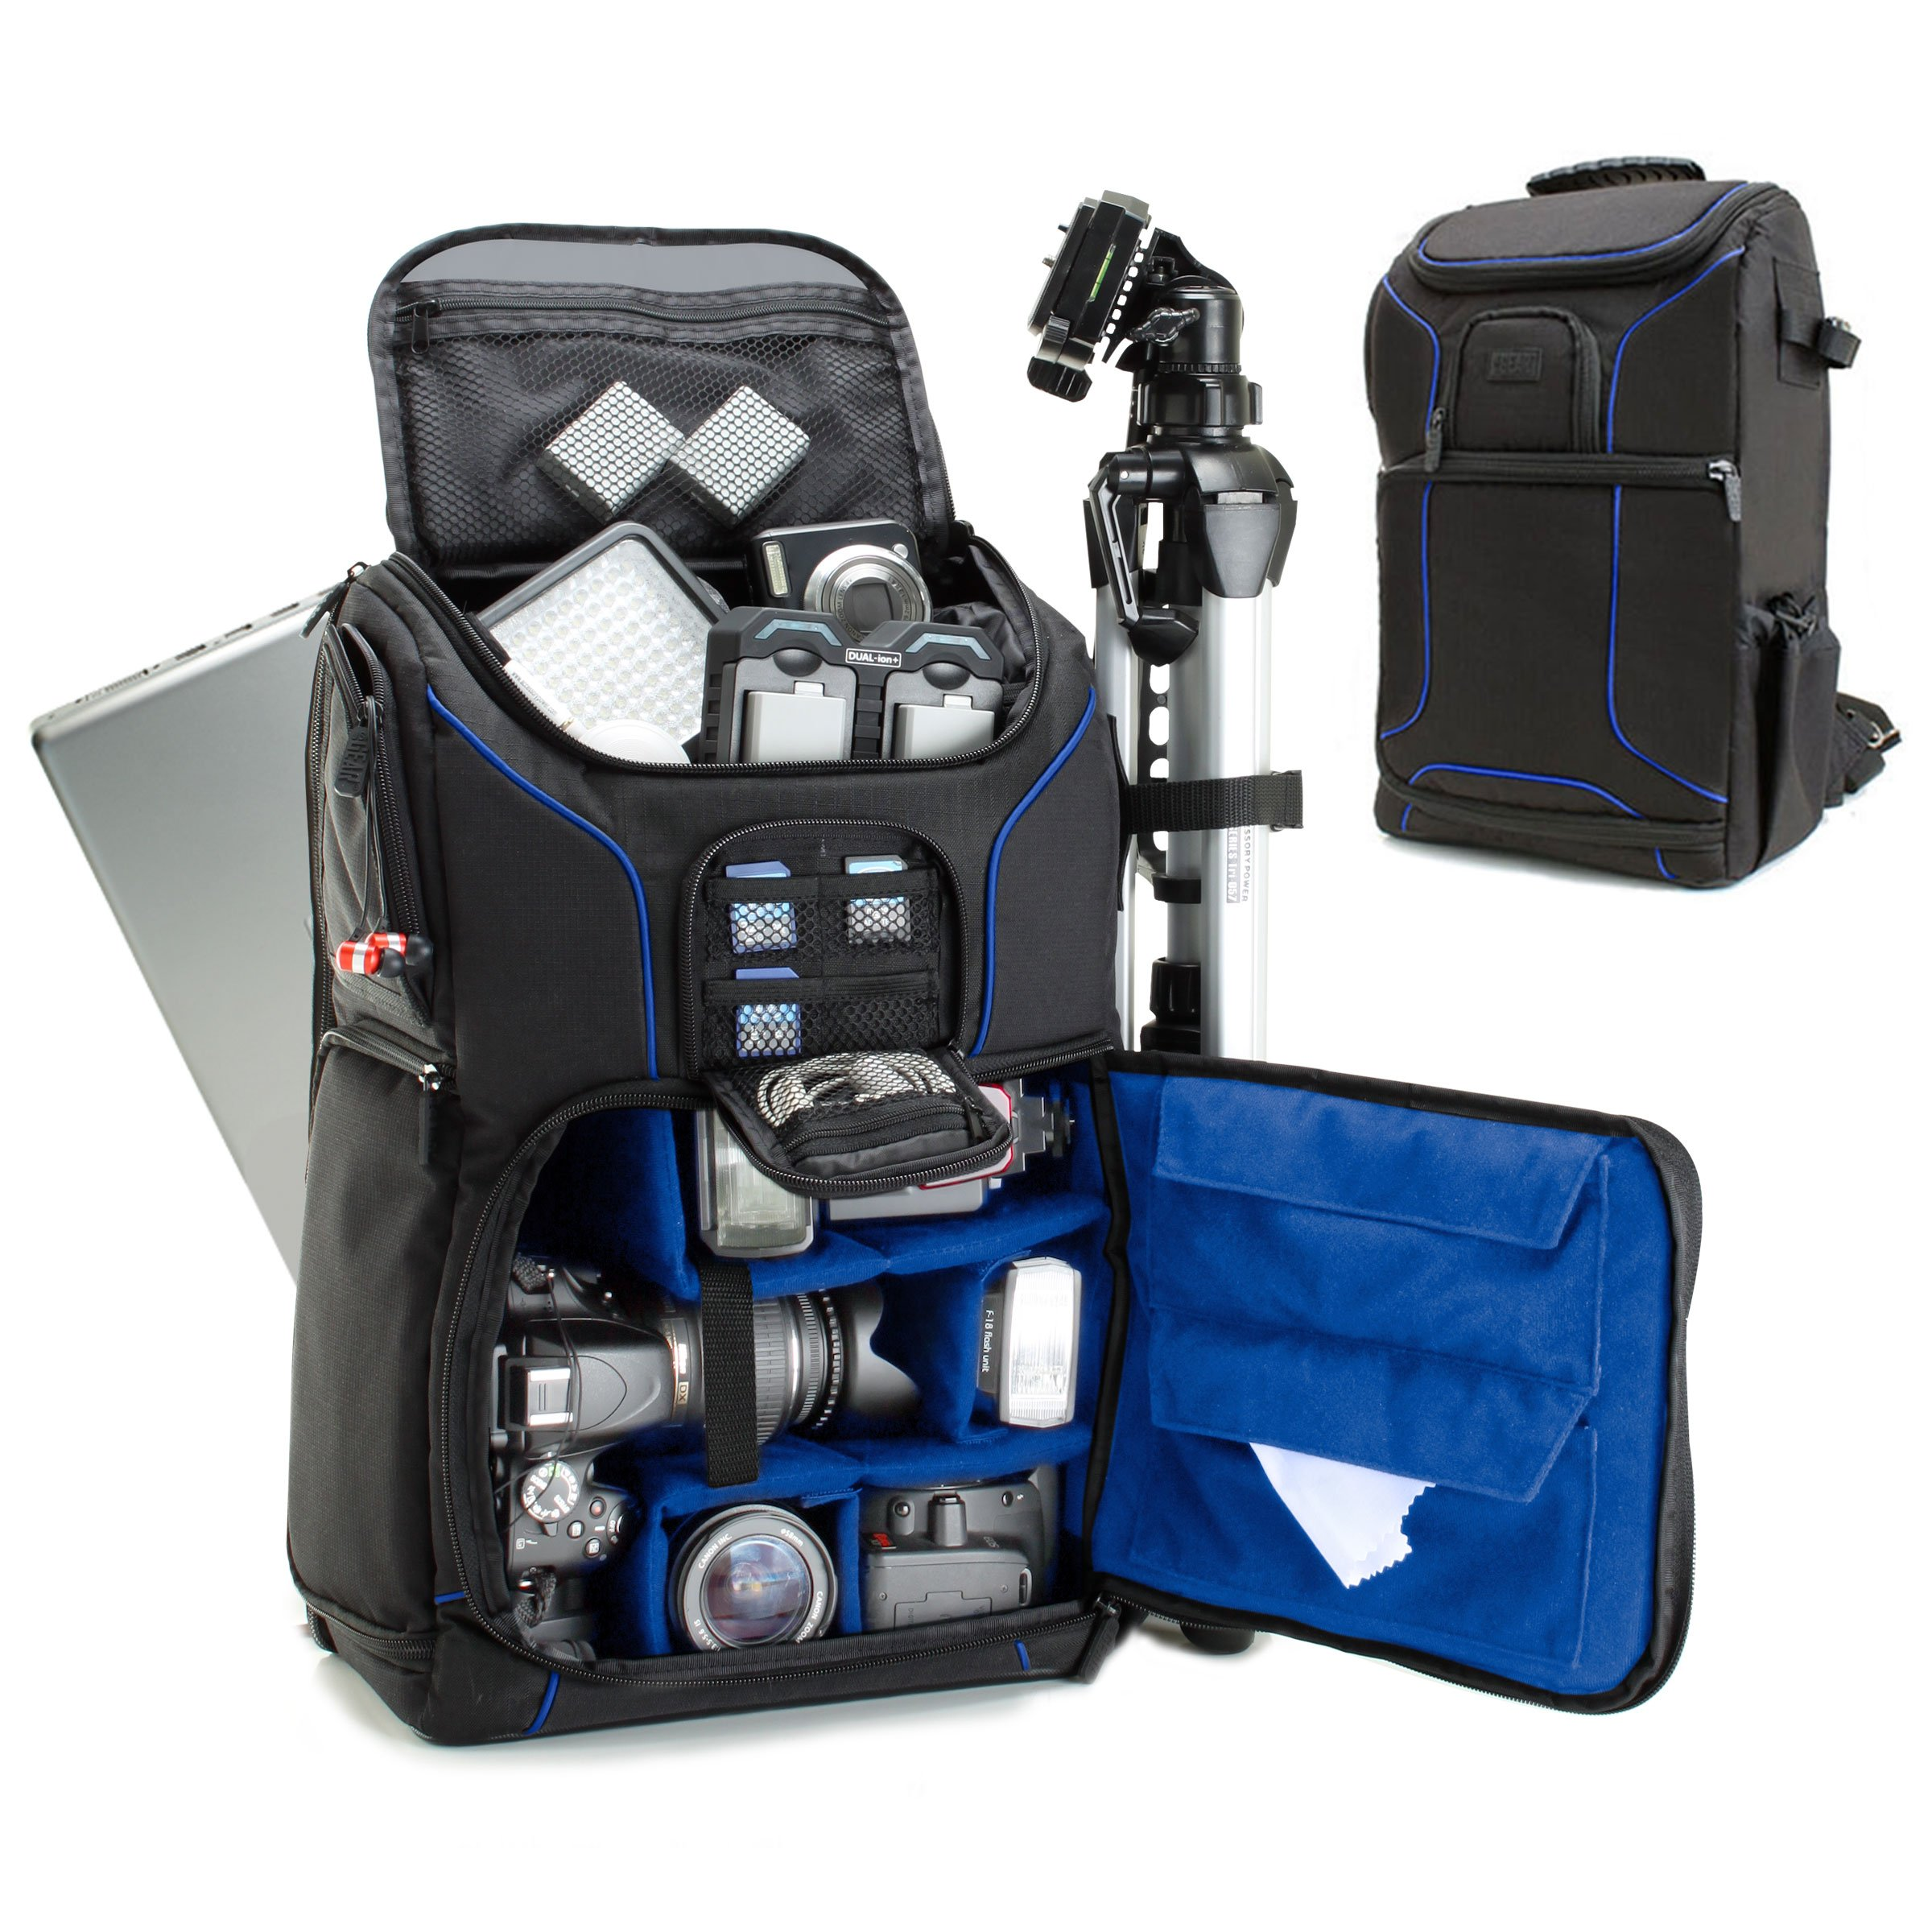 Digital SLR Camera Backpack with 15.6'' Laptop Compartment (Blue) by USA Gear Features Padded Custom Dividers, Tripod Holder, Rain Cover and Storage for DSLR Cameras by Nikon, Canon, Sony & More